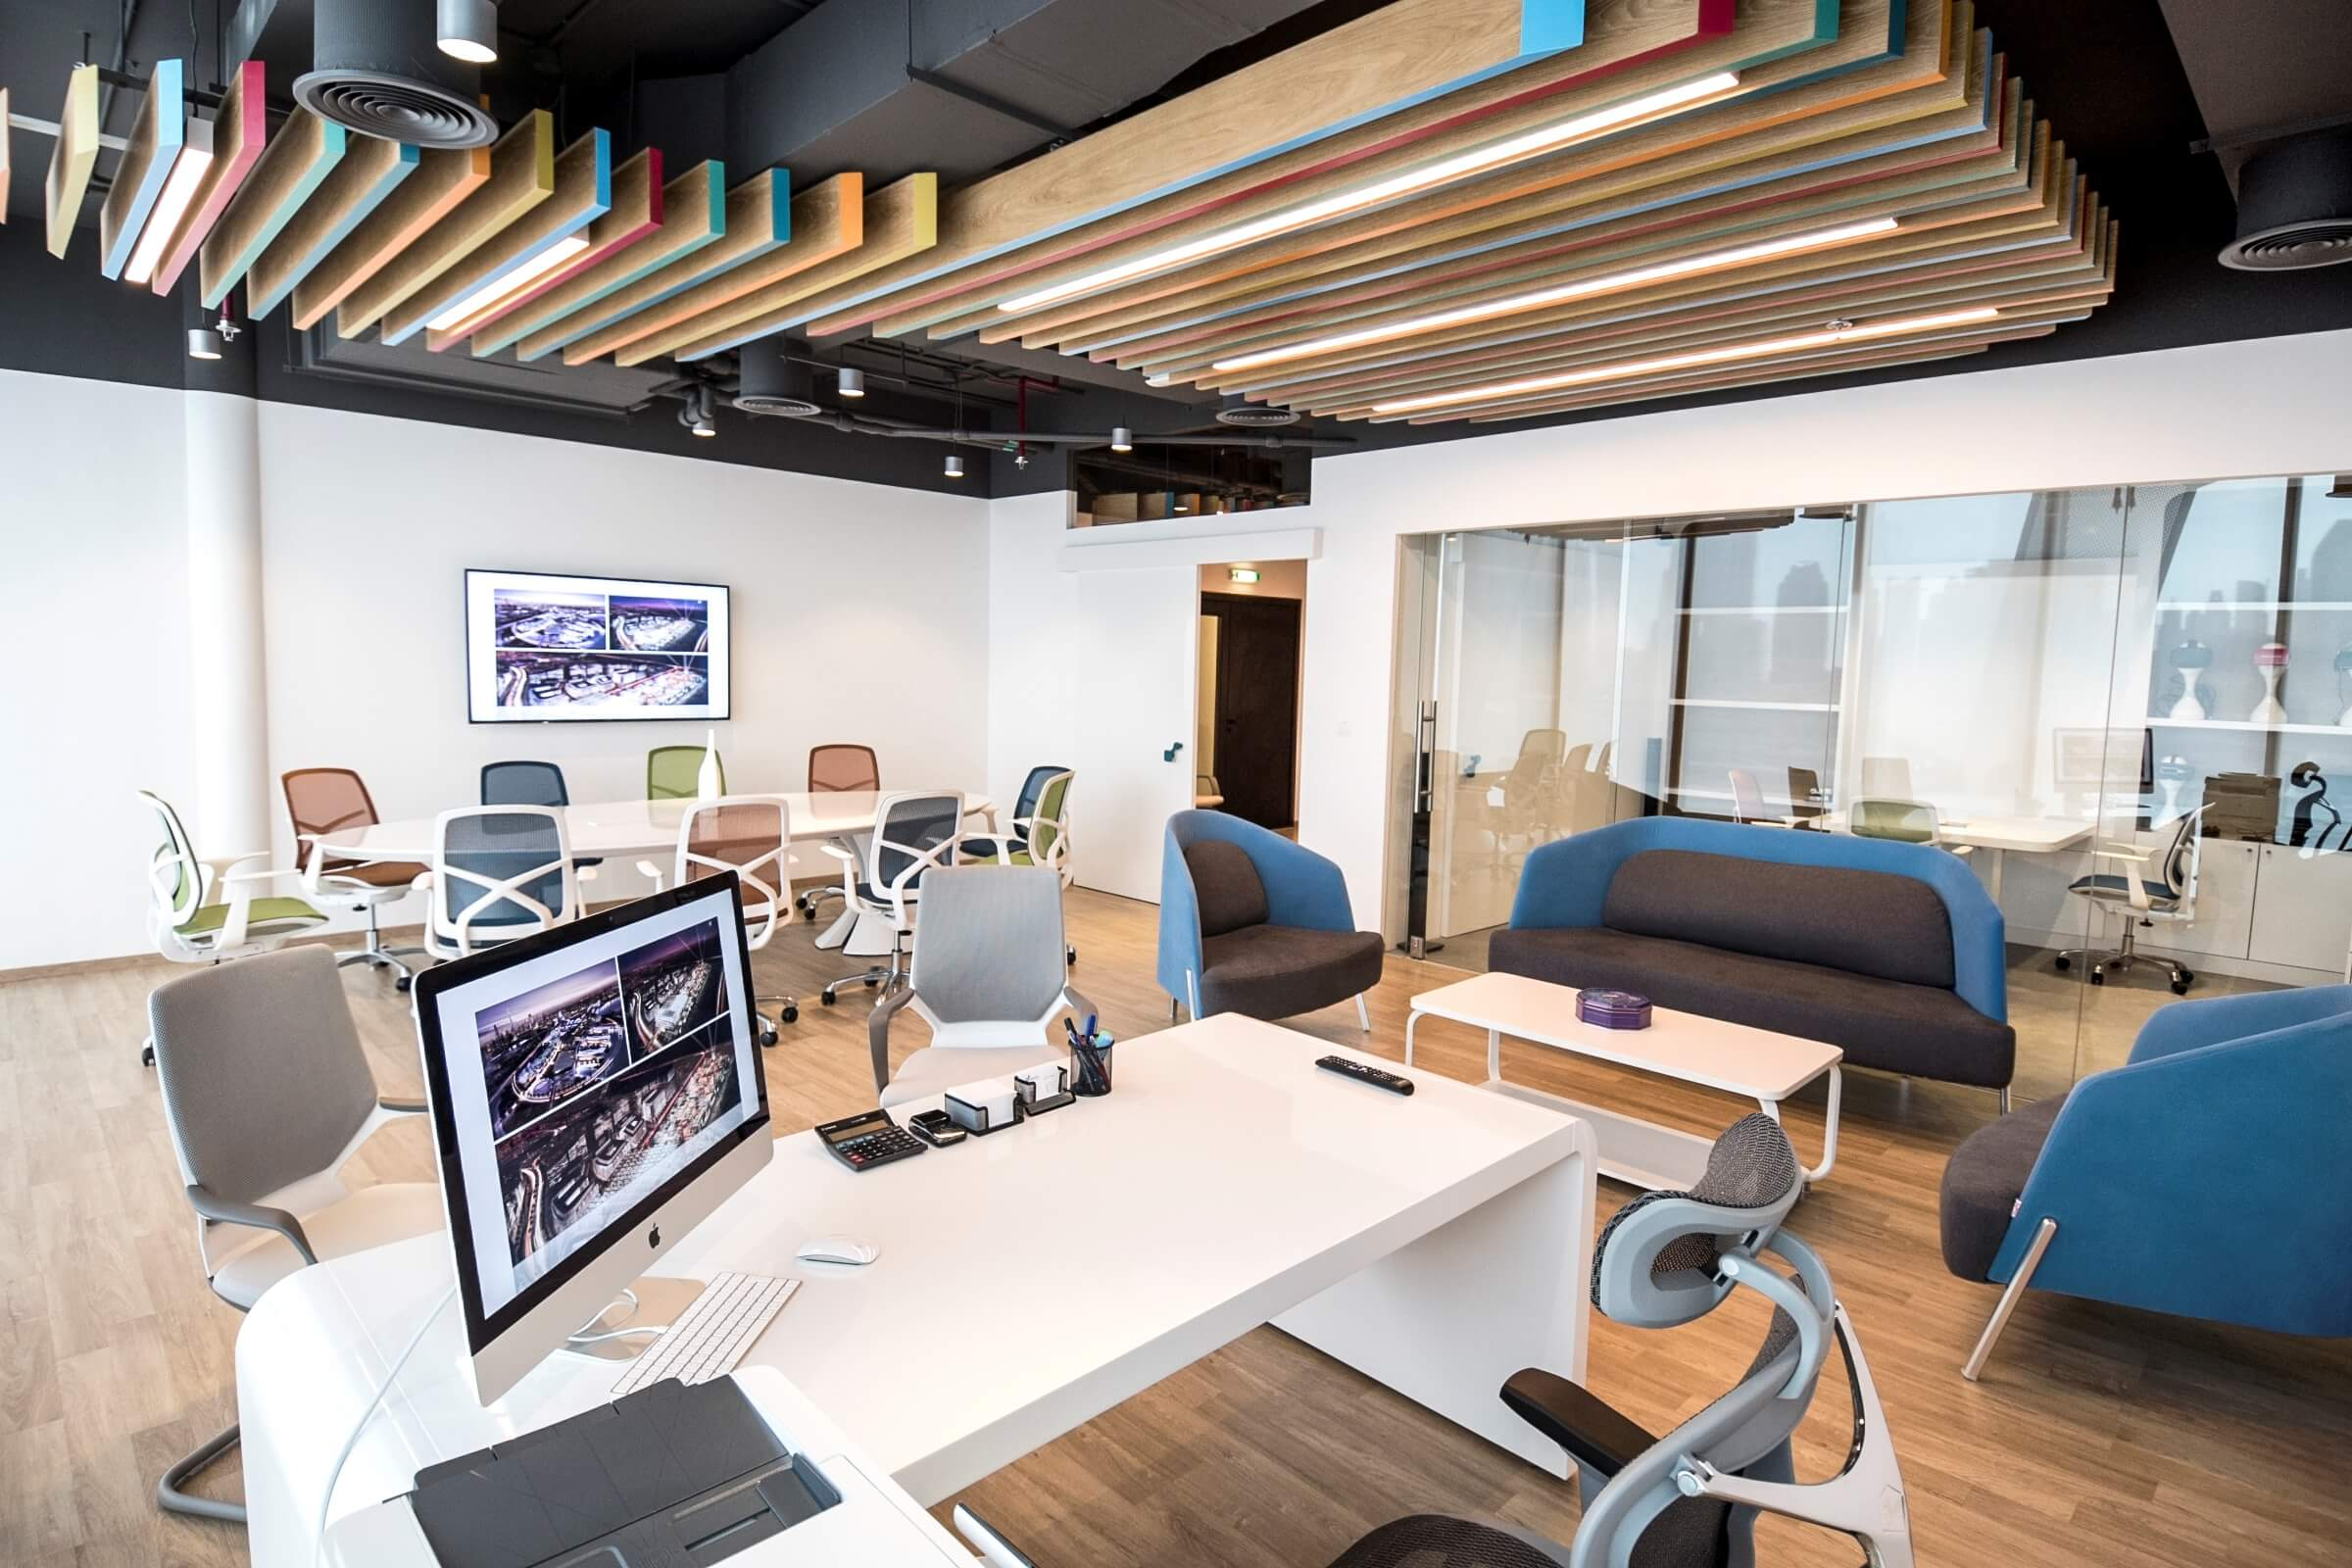 NDIGITEC inaugurates its new lounge at D3(Dubai Design District)